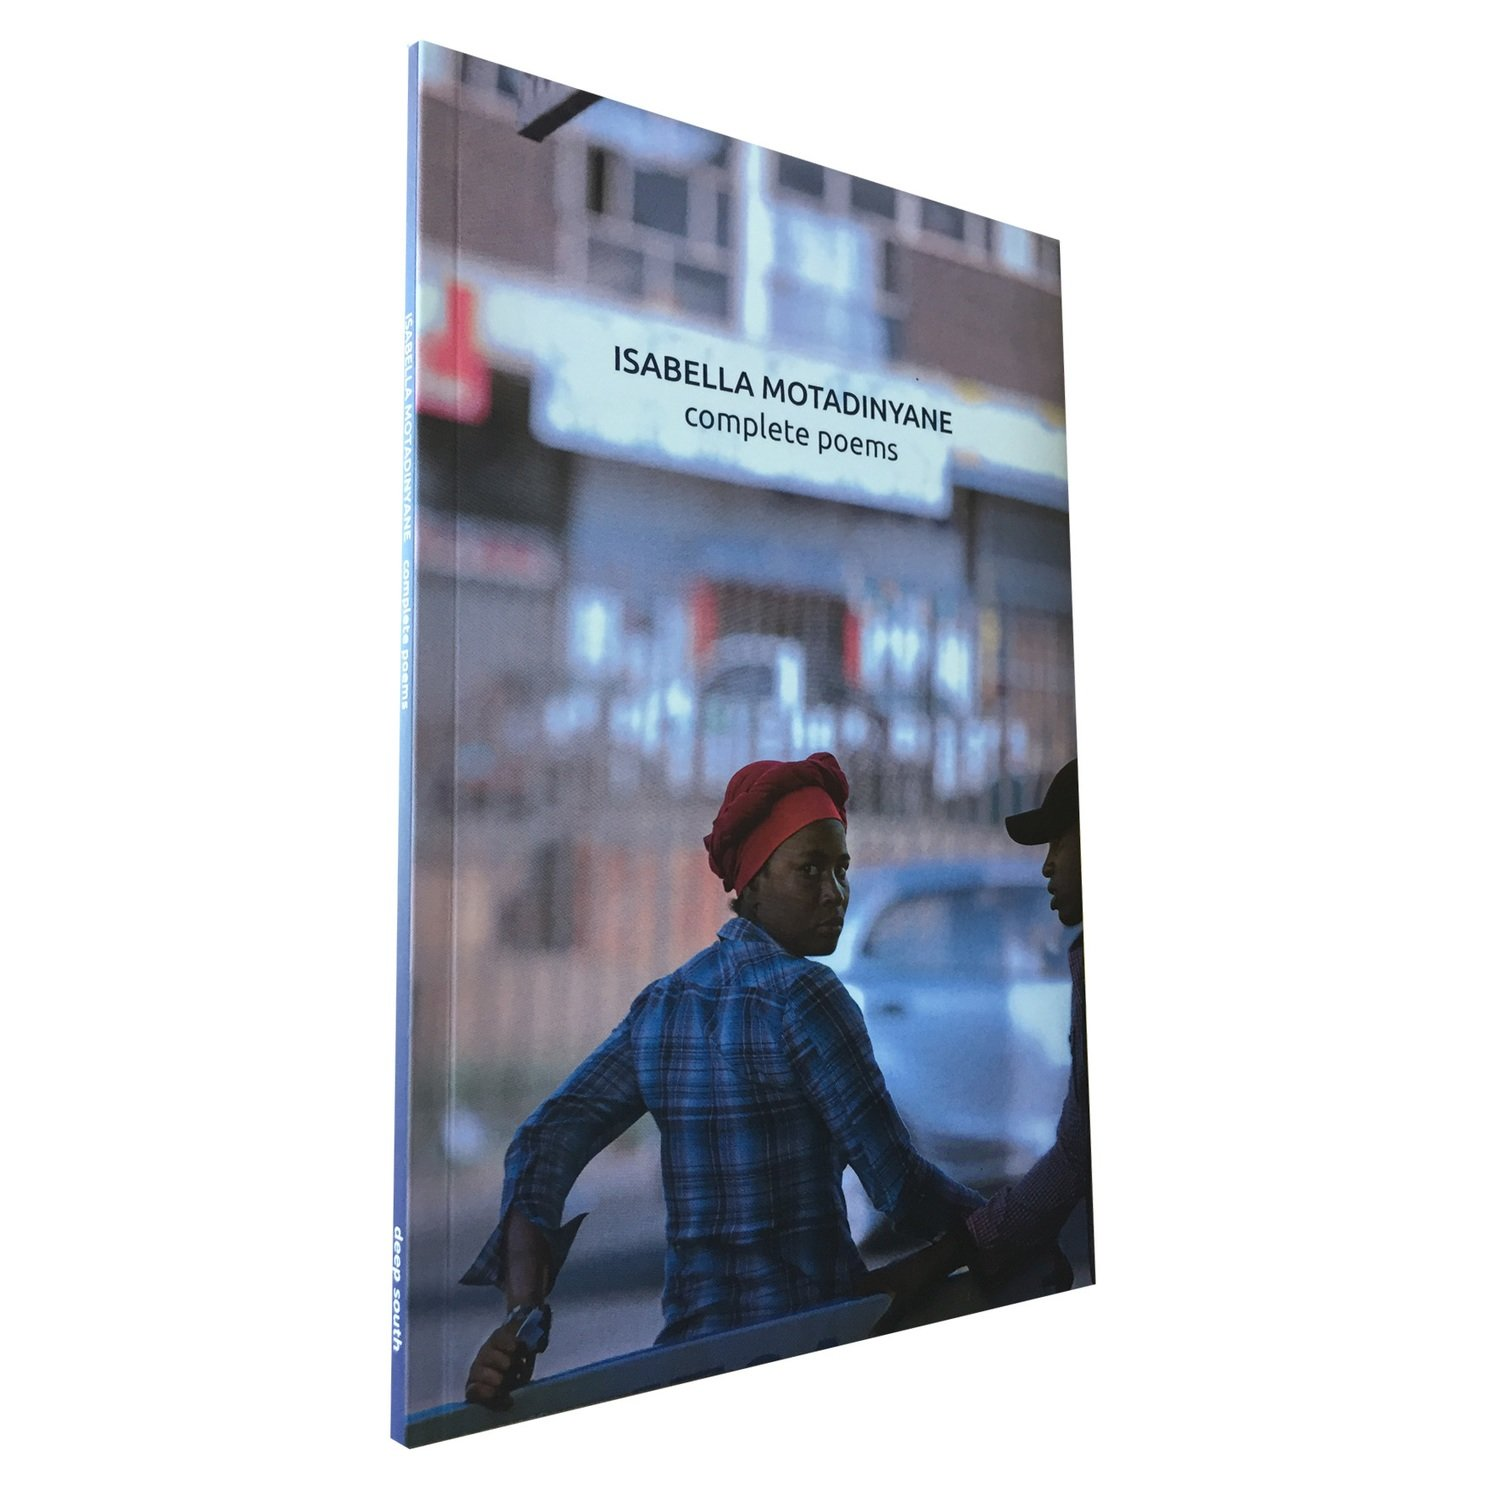 Completed Poems by Isabella Motadinyane (Deep South)